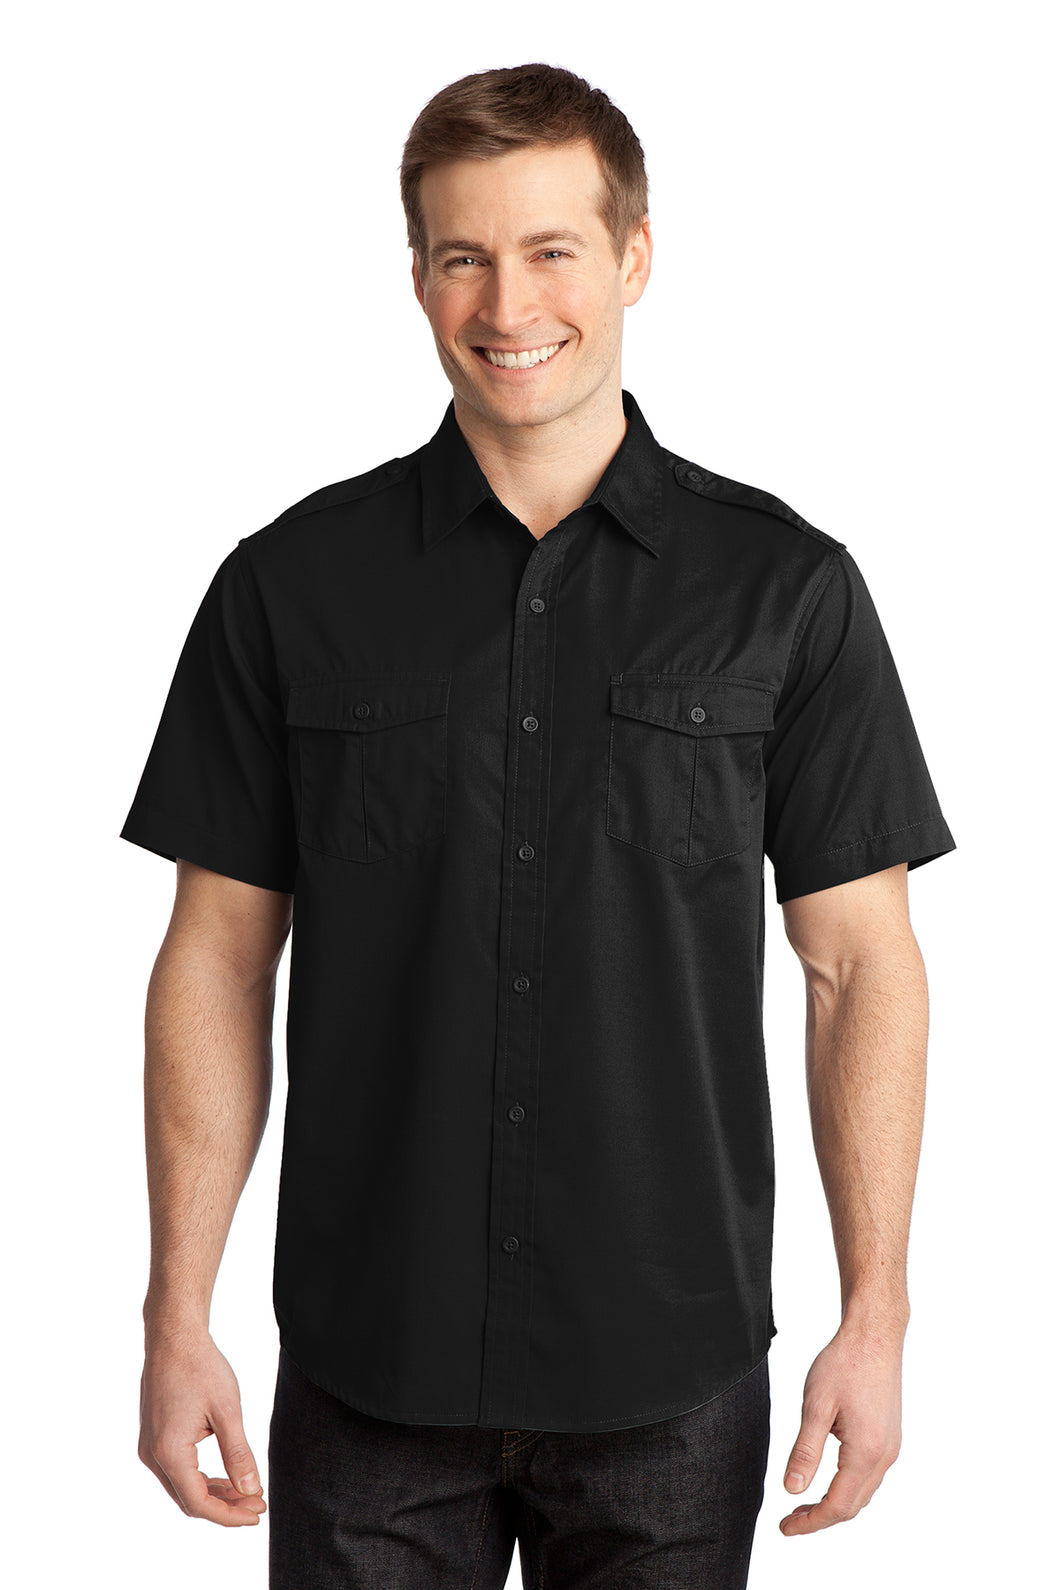 S648  Port Authority® Stain-Release Short Sleeve Twill Shirt